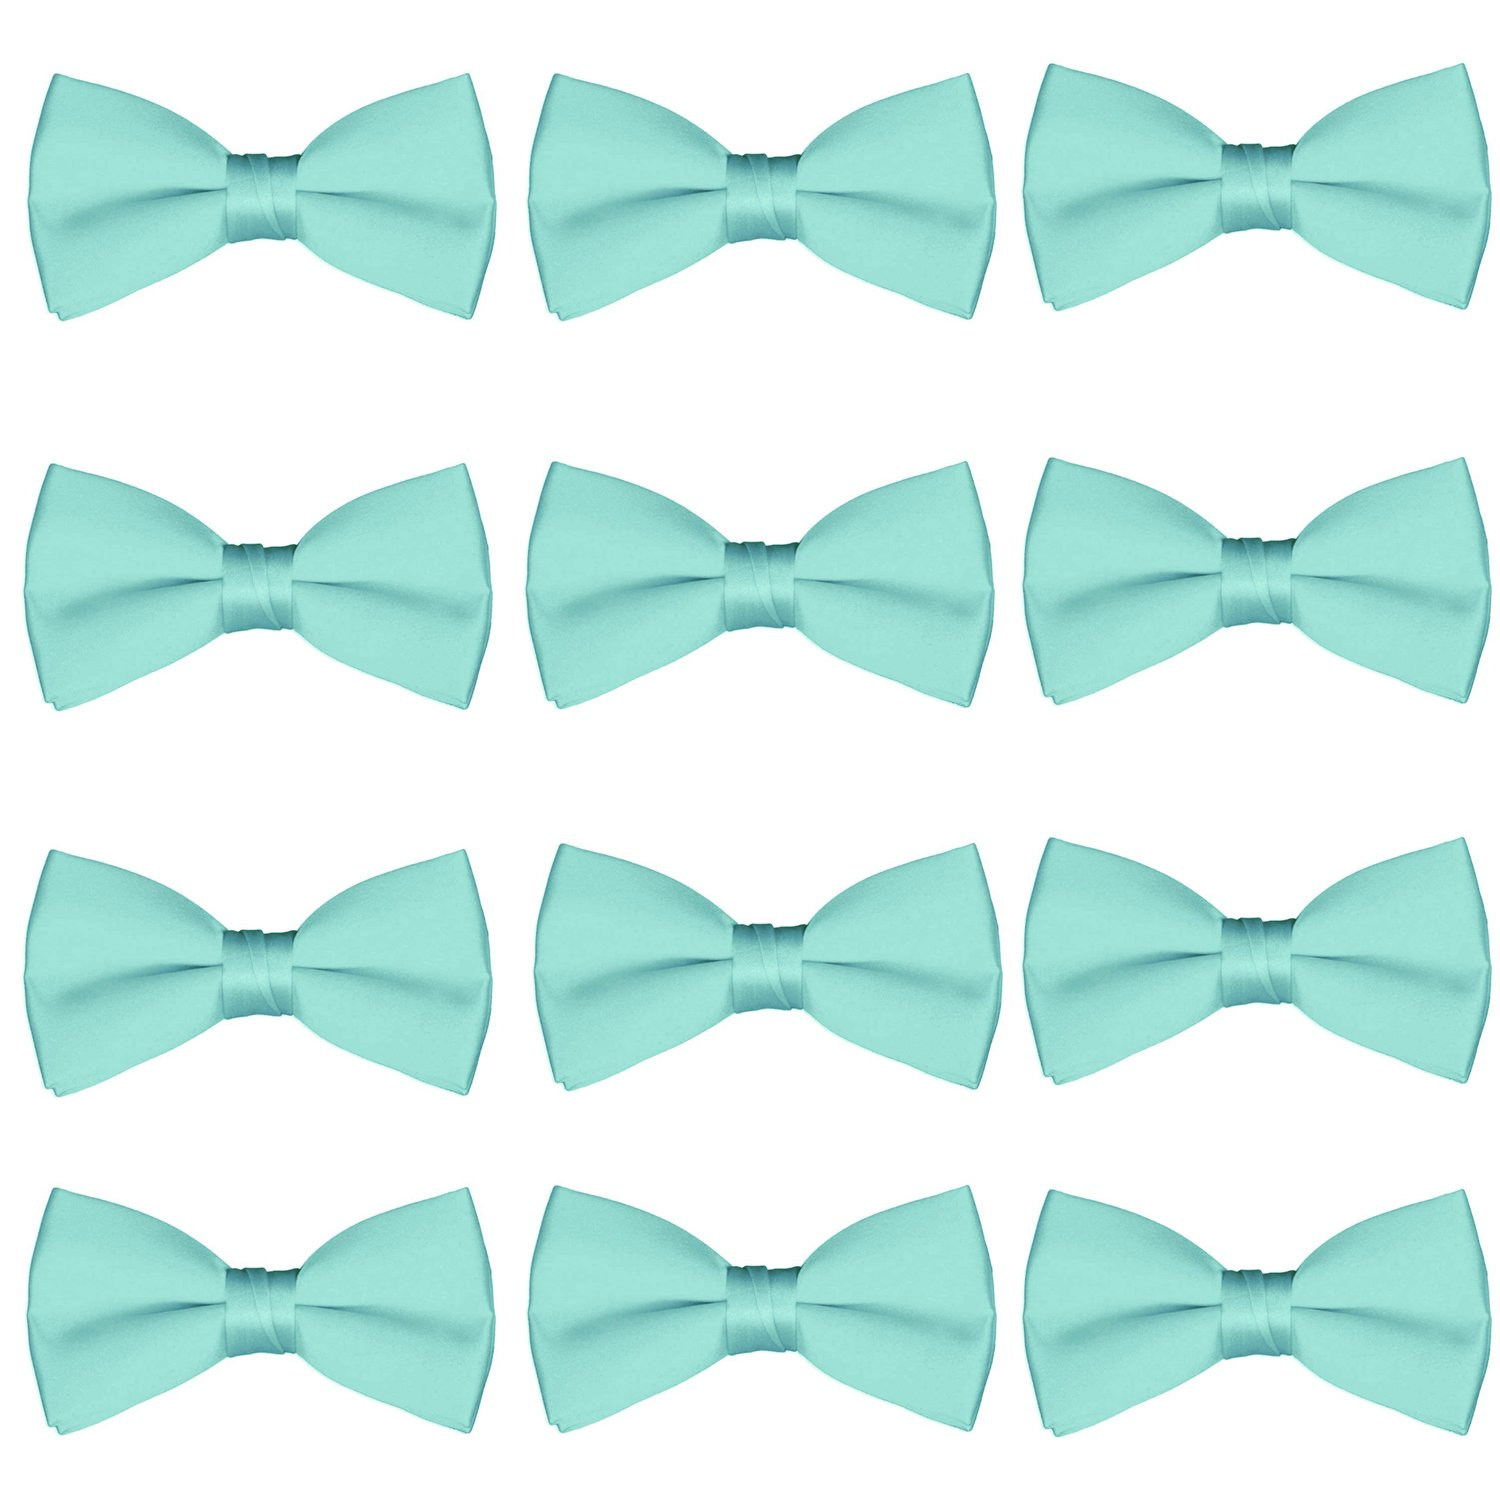 Boys Bow Tie Wholesale 12 Pack Children Chorus Pre-Tied Bowties Kids Tuxedo Solid Ties (Mint)